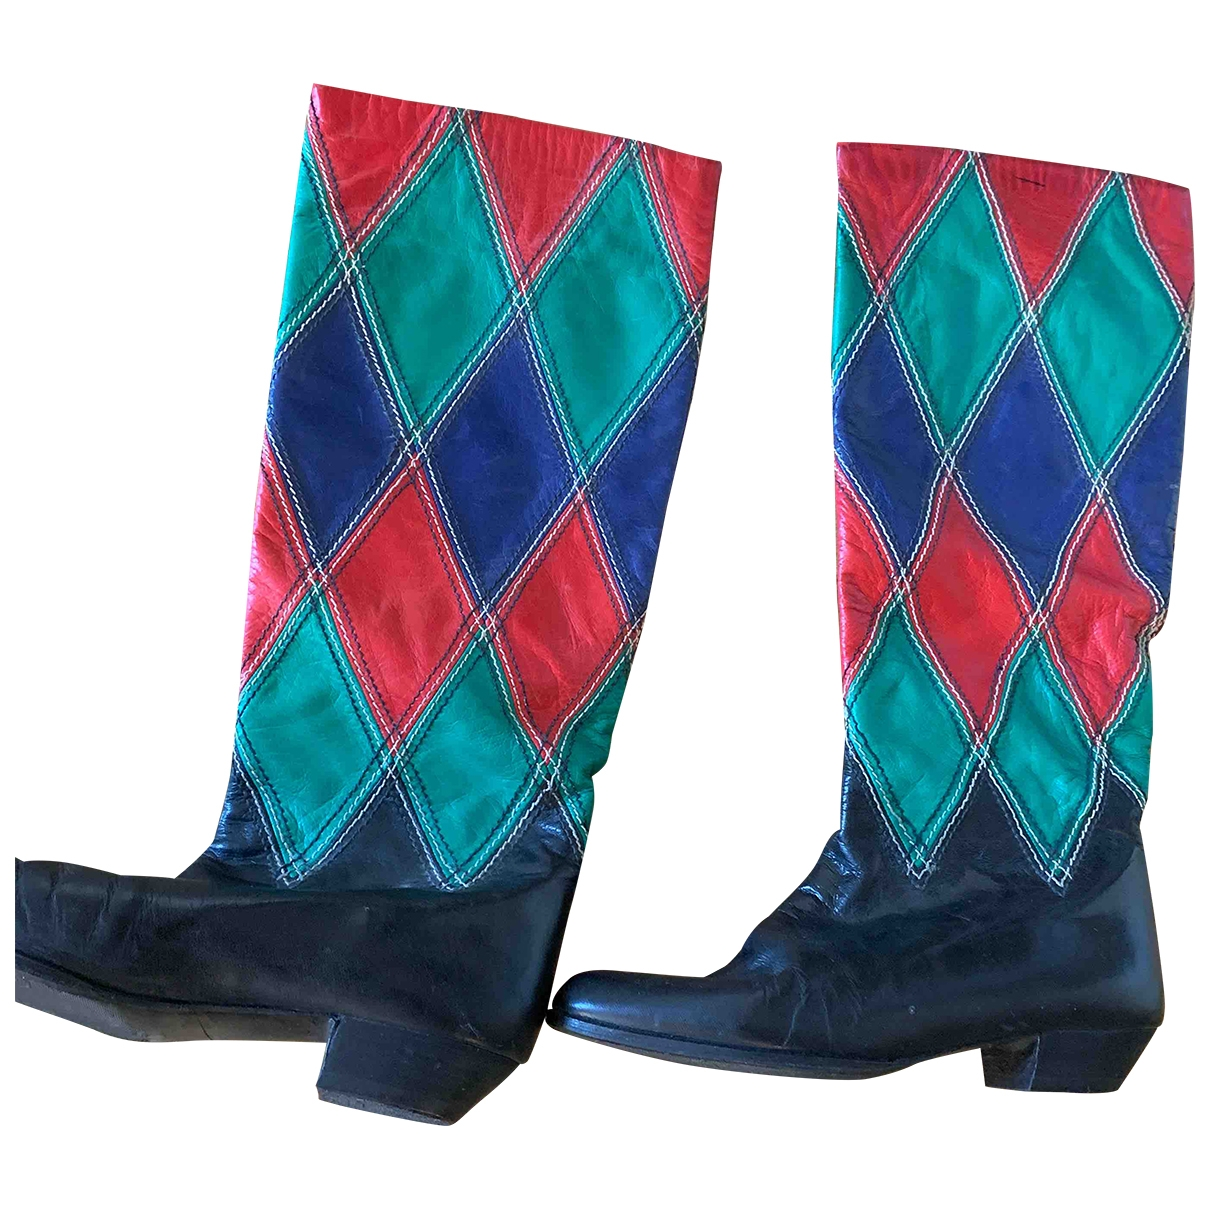 Andrea Pfister \N Multicolour Leather Boots for Women 37 EU